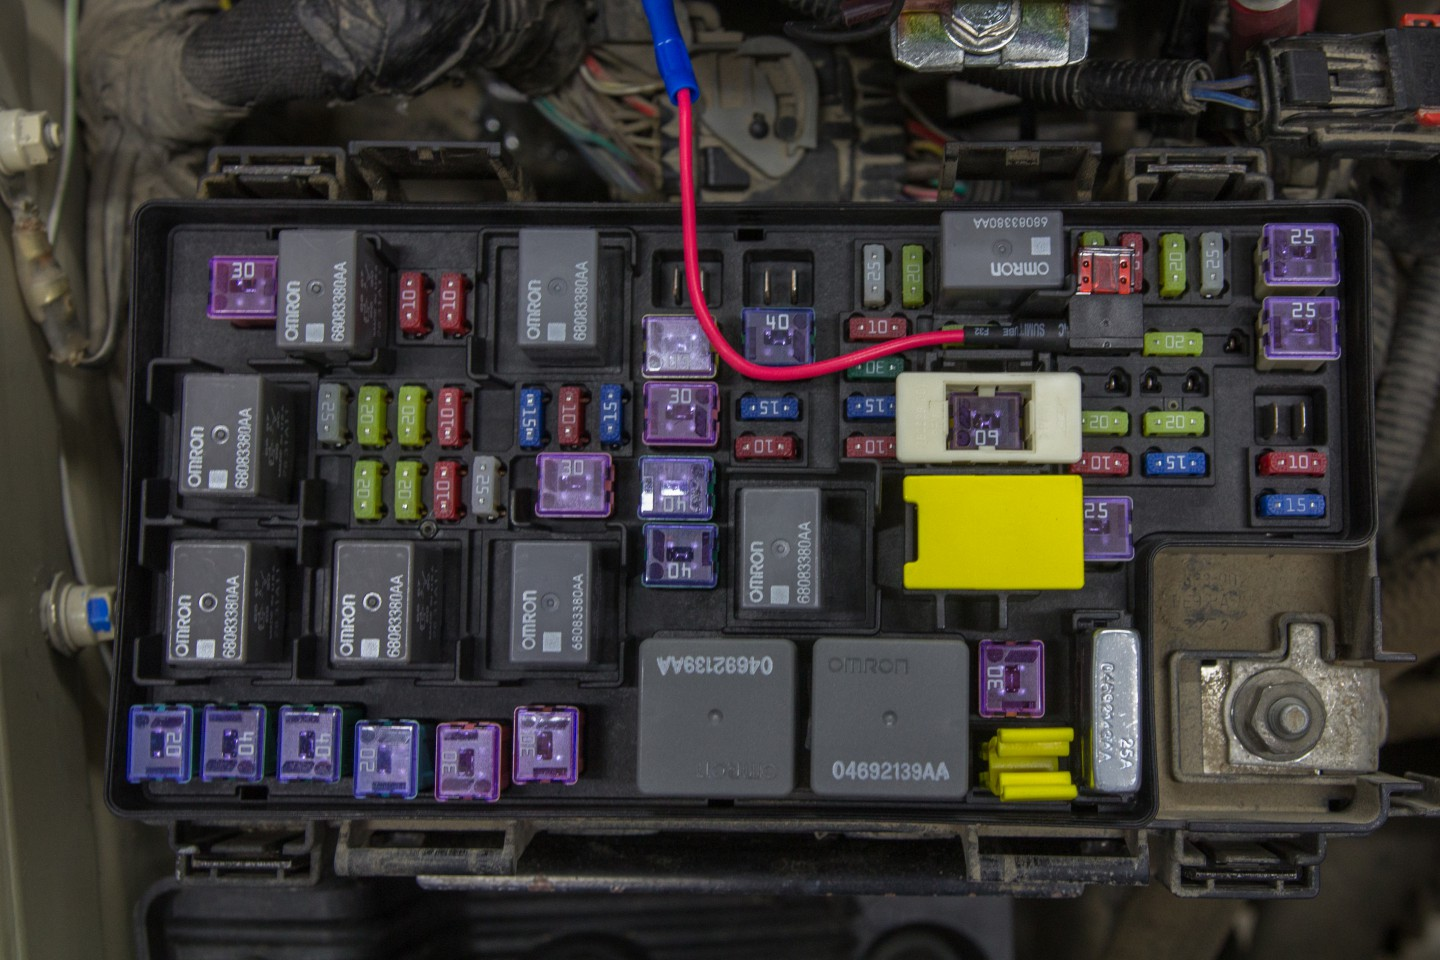 jeep wrangler fuse box wiring diagram Jeep Grand Cherokee Fuse Box jeep wrangler fuse box